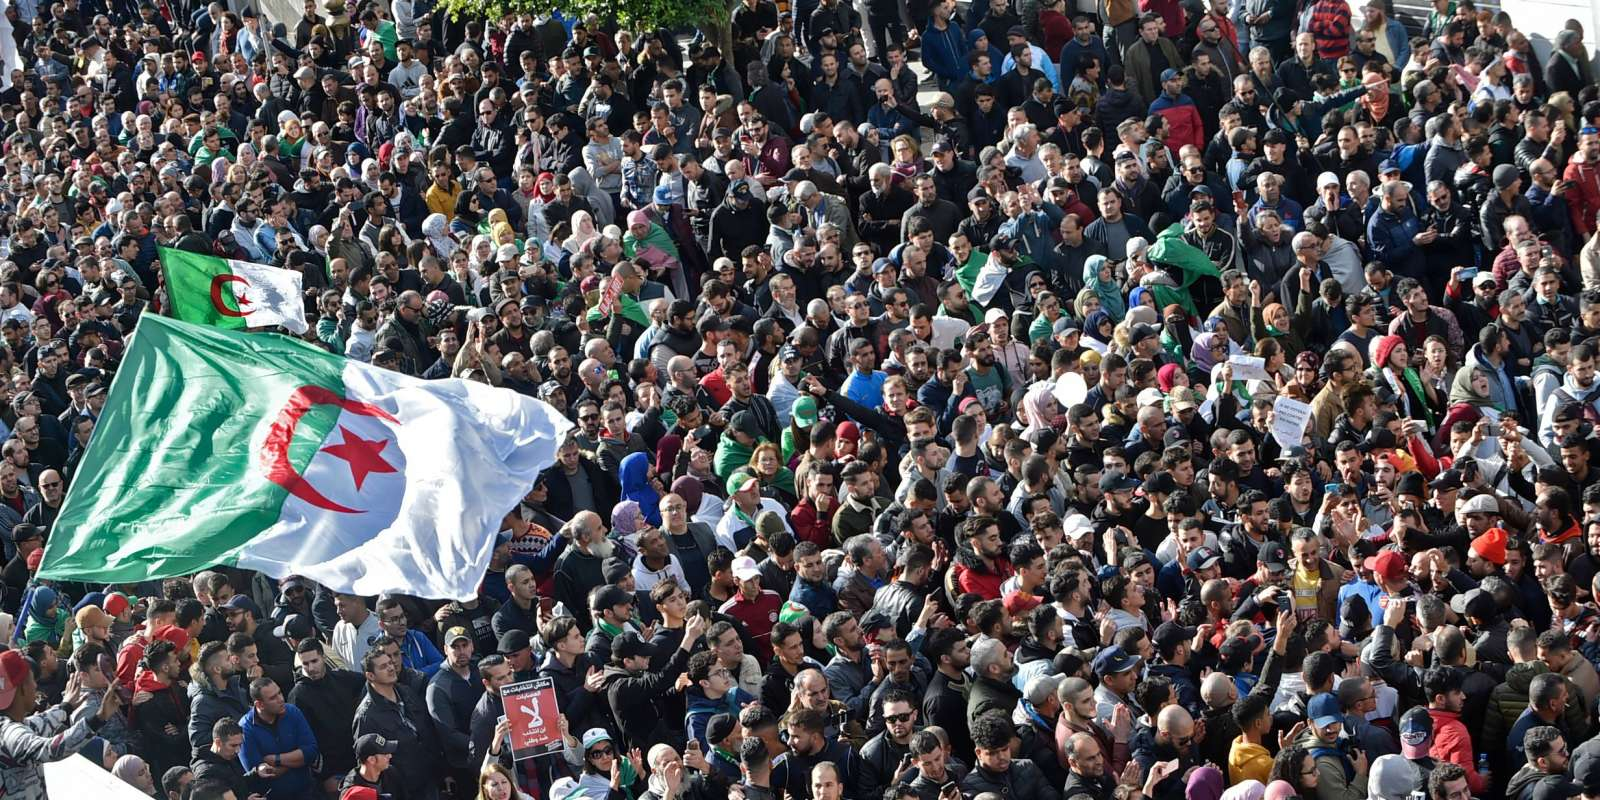 TOPSHOT - Algerian protesters take part in an anti-government demonstration in the capital Algiers on December 12, 2019 during the presidential election. Five candidates are running in Algeria's presidential election to replace ousted Algerian president Abdelaziz Bouteflika, the country's election authority said Saturday, amid widespread protests against the vote. Former premiers Ali Benflis and Abdelmadjid Tebboune are considered front-runners in an election opposed by the mass protest movement that alongside the army forced Bouteflika to resign in April after 20 years in power. No opinion polls have been published but observers expect an extremely low turnout nationwide after months of demonstrations opposing the vote. / AFP / RYAD KRAMDI